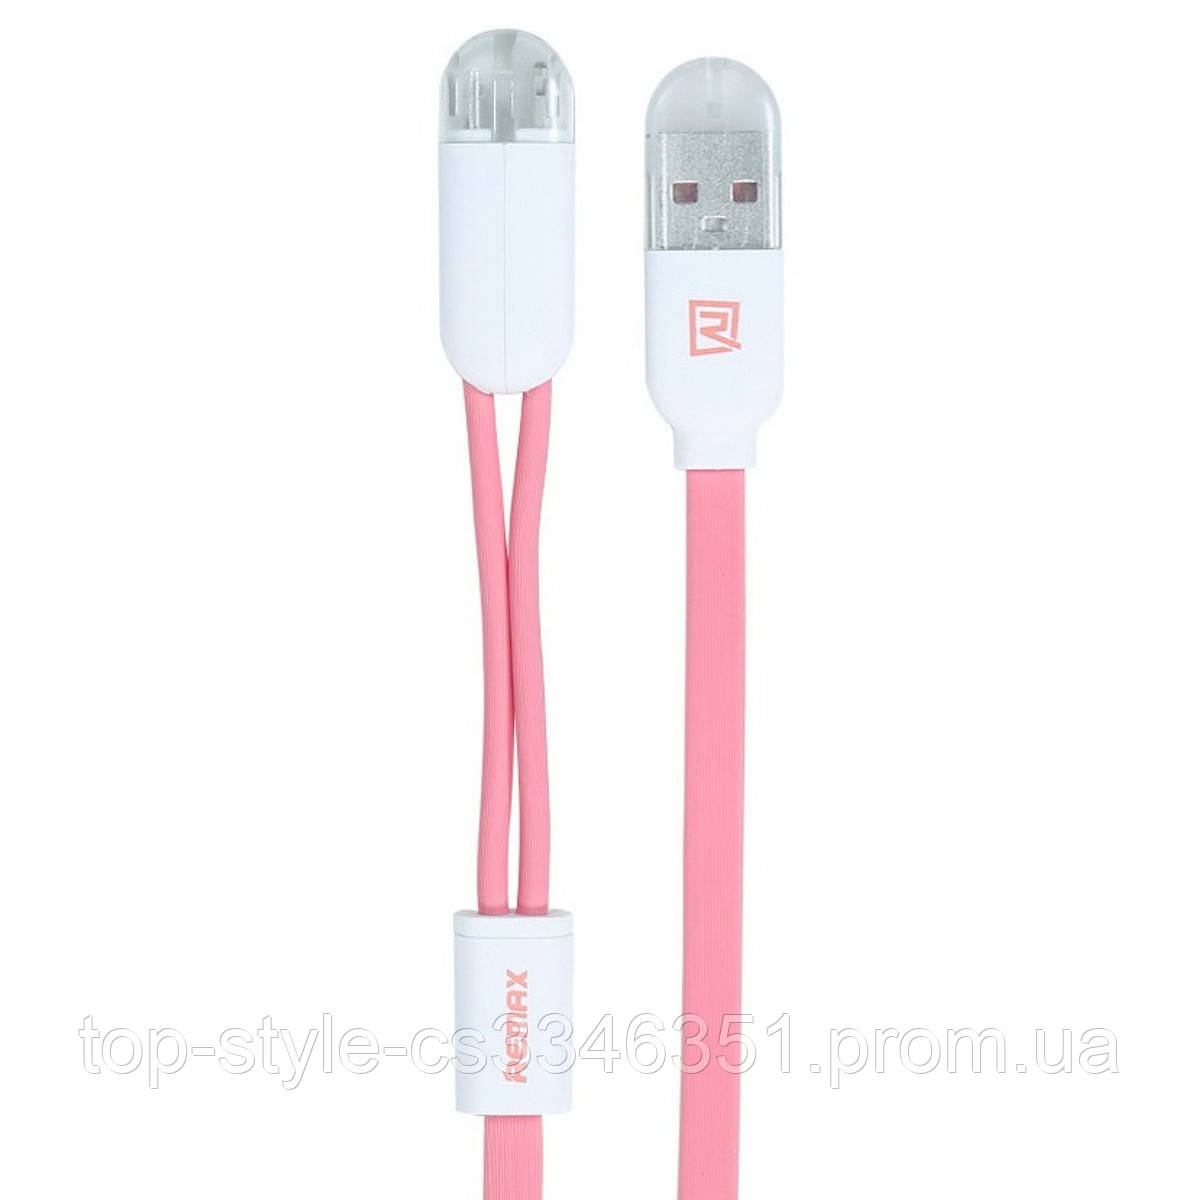 Кабель 2-in-1 Remax RC-025T Twins Cable Lightning-microUSB-USB 1m Pink